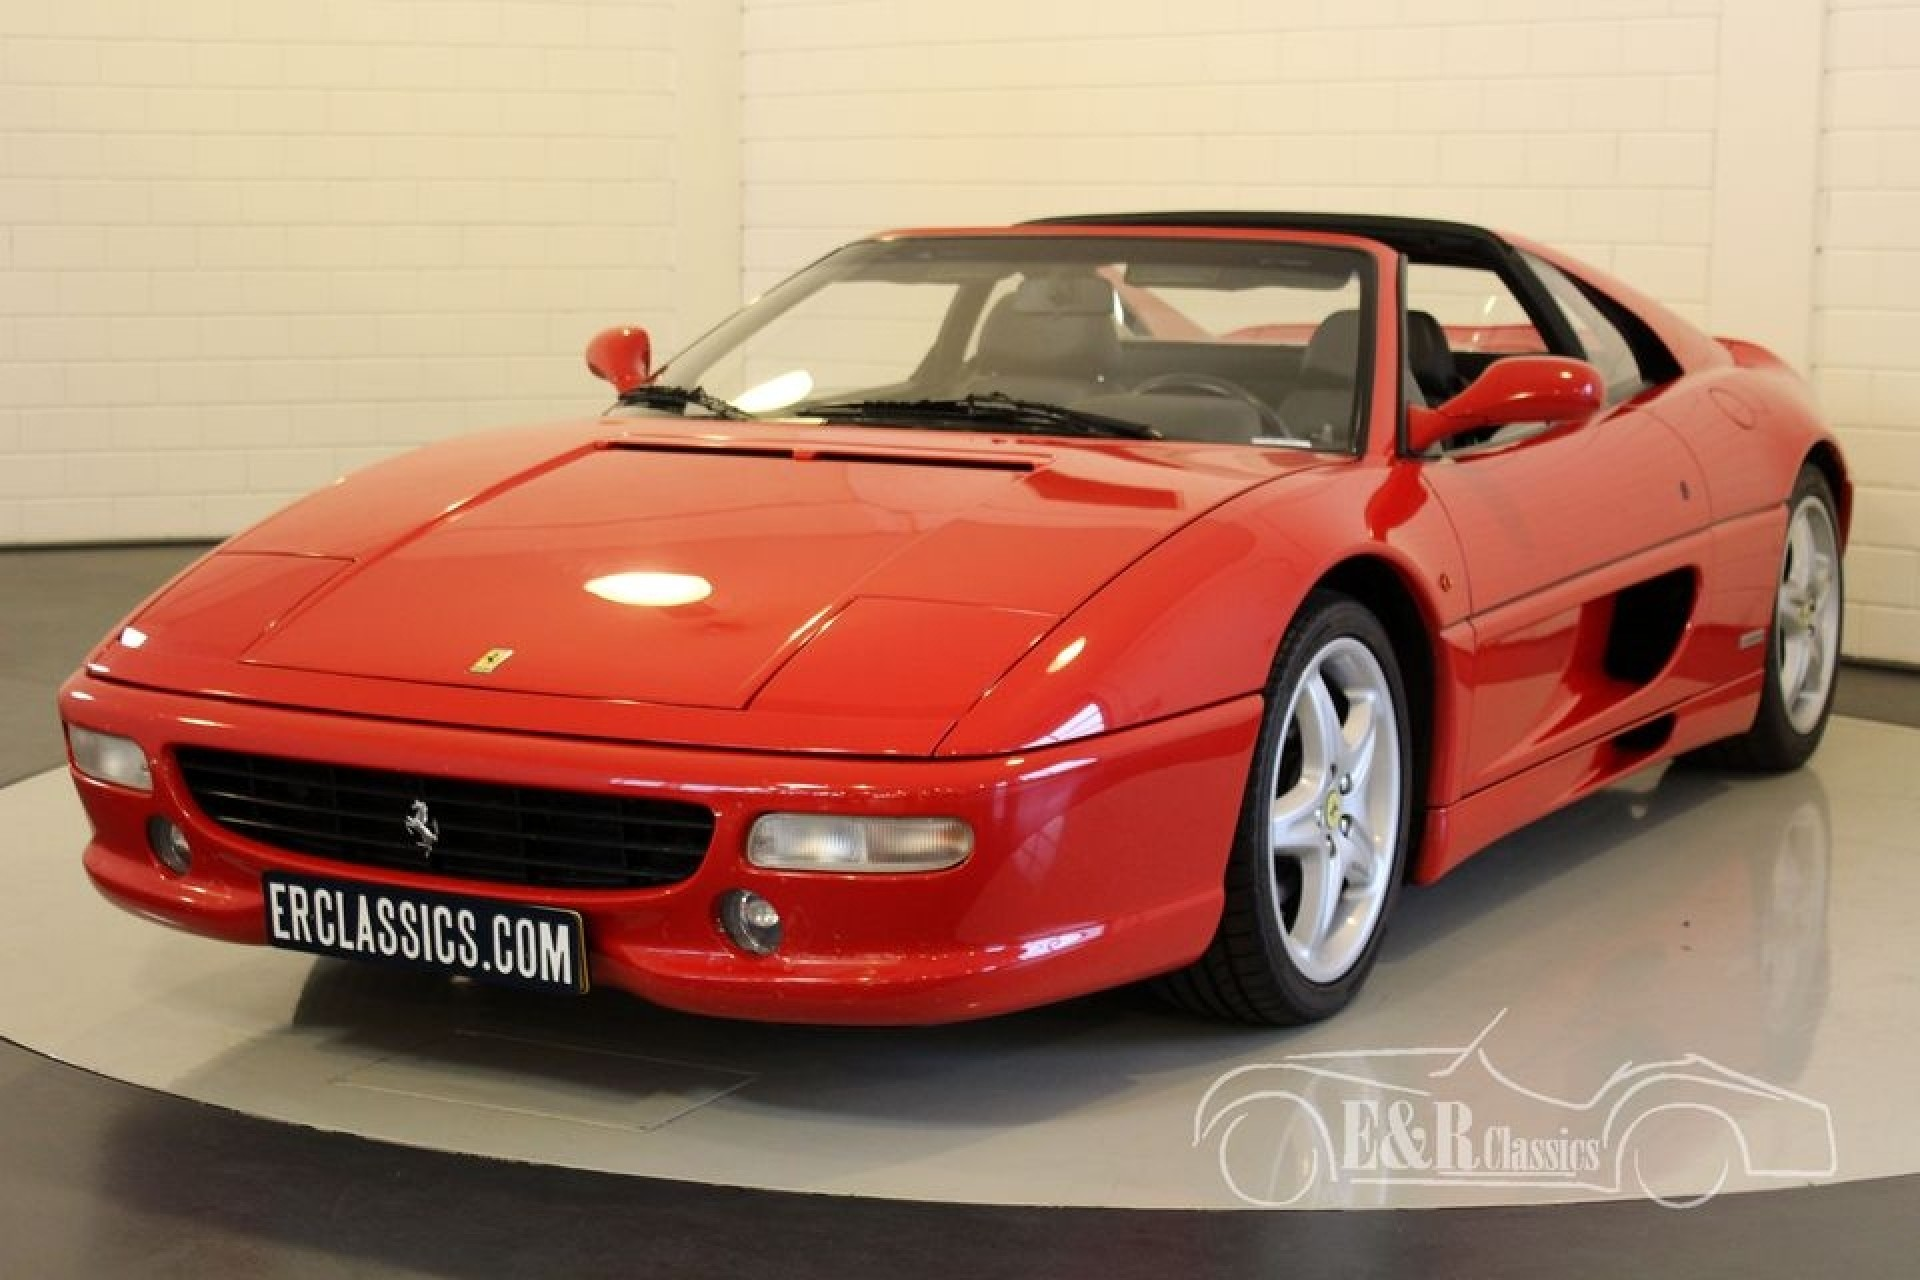 ferrari f355 gts f1 km 1998 vendre erclassics. Black Bedroom Furniture Sets. Home Design Ideas